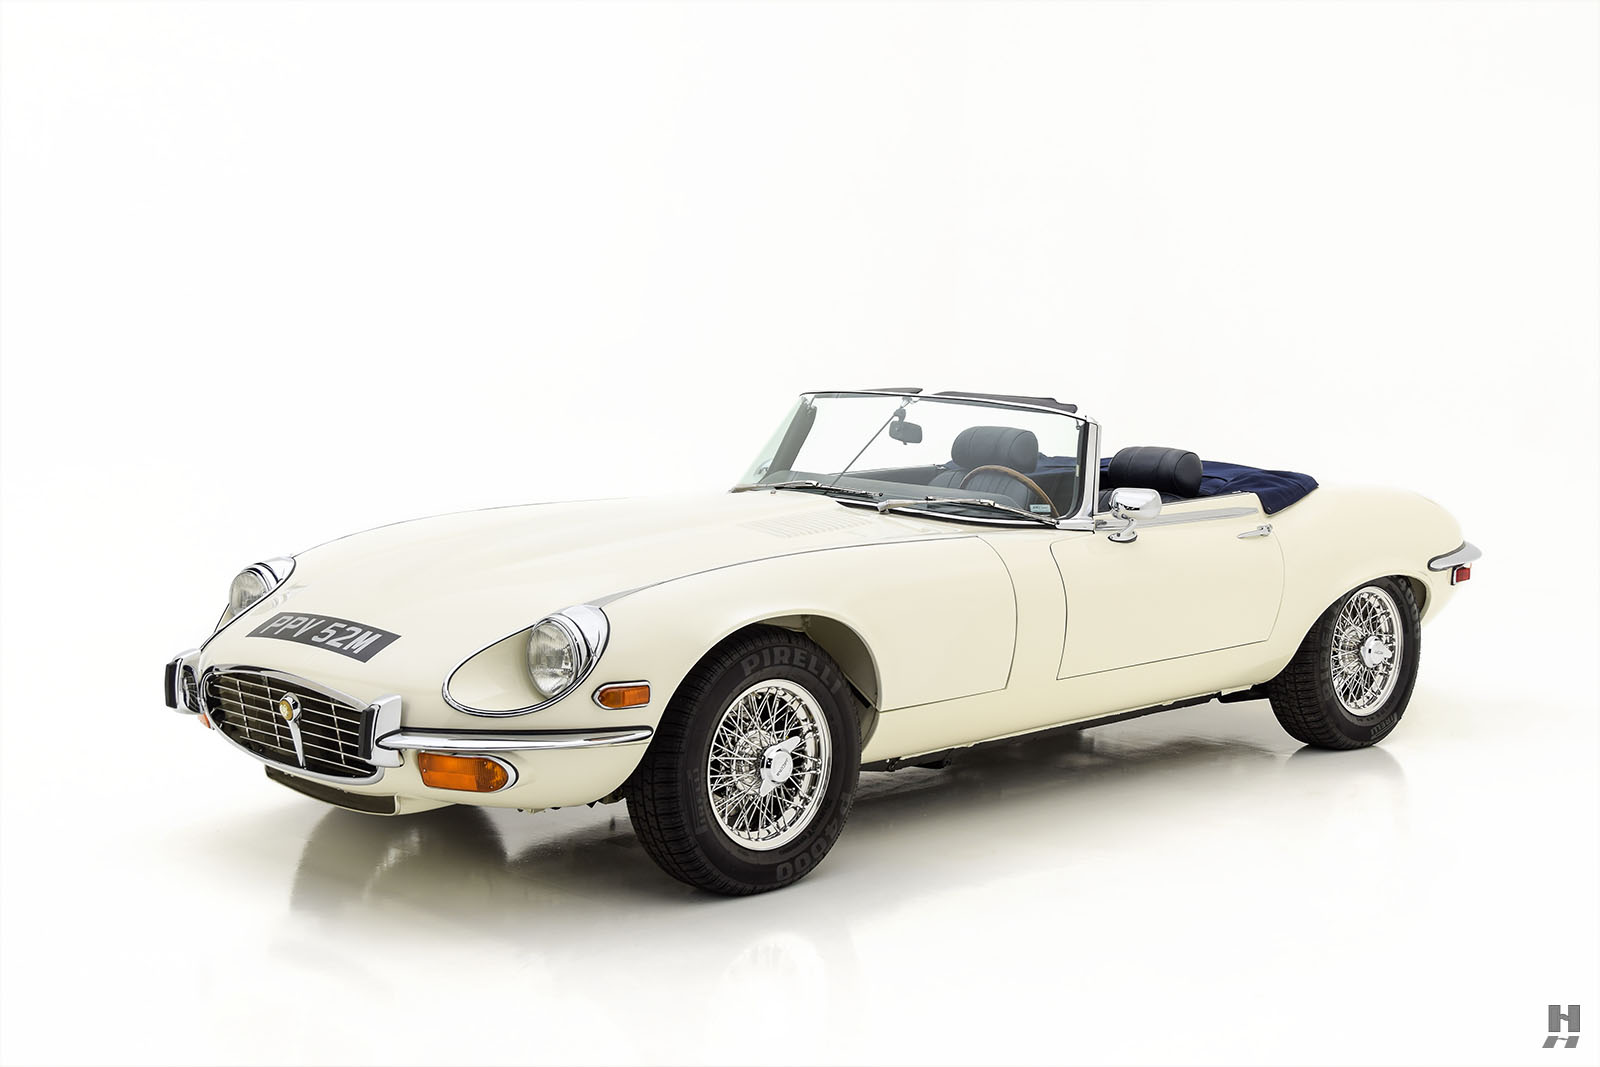 1974 Jaguar XKE Roadster For Sale at Hyman LTD